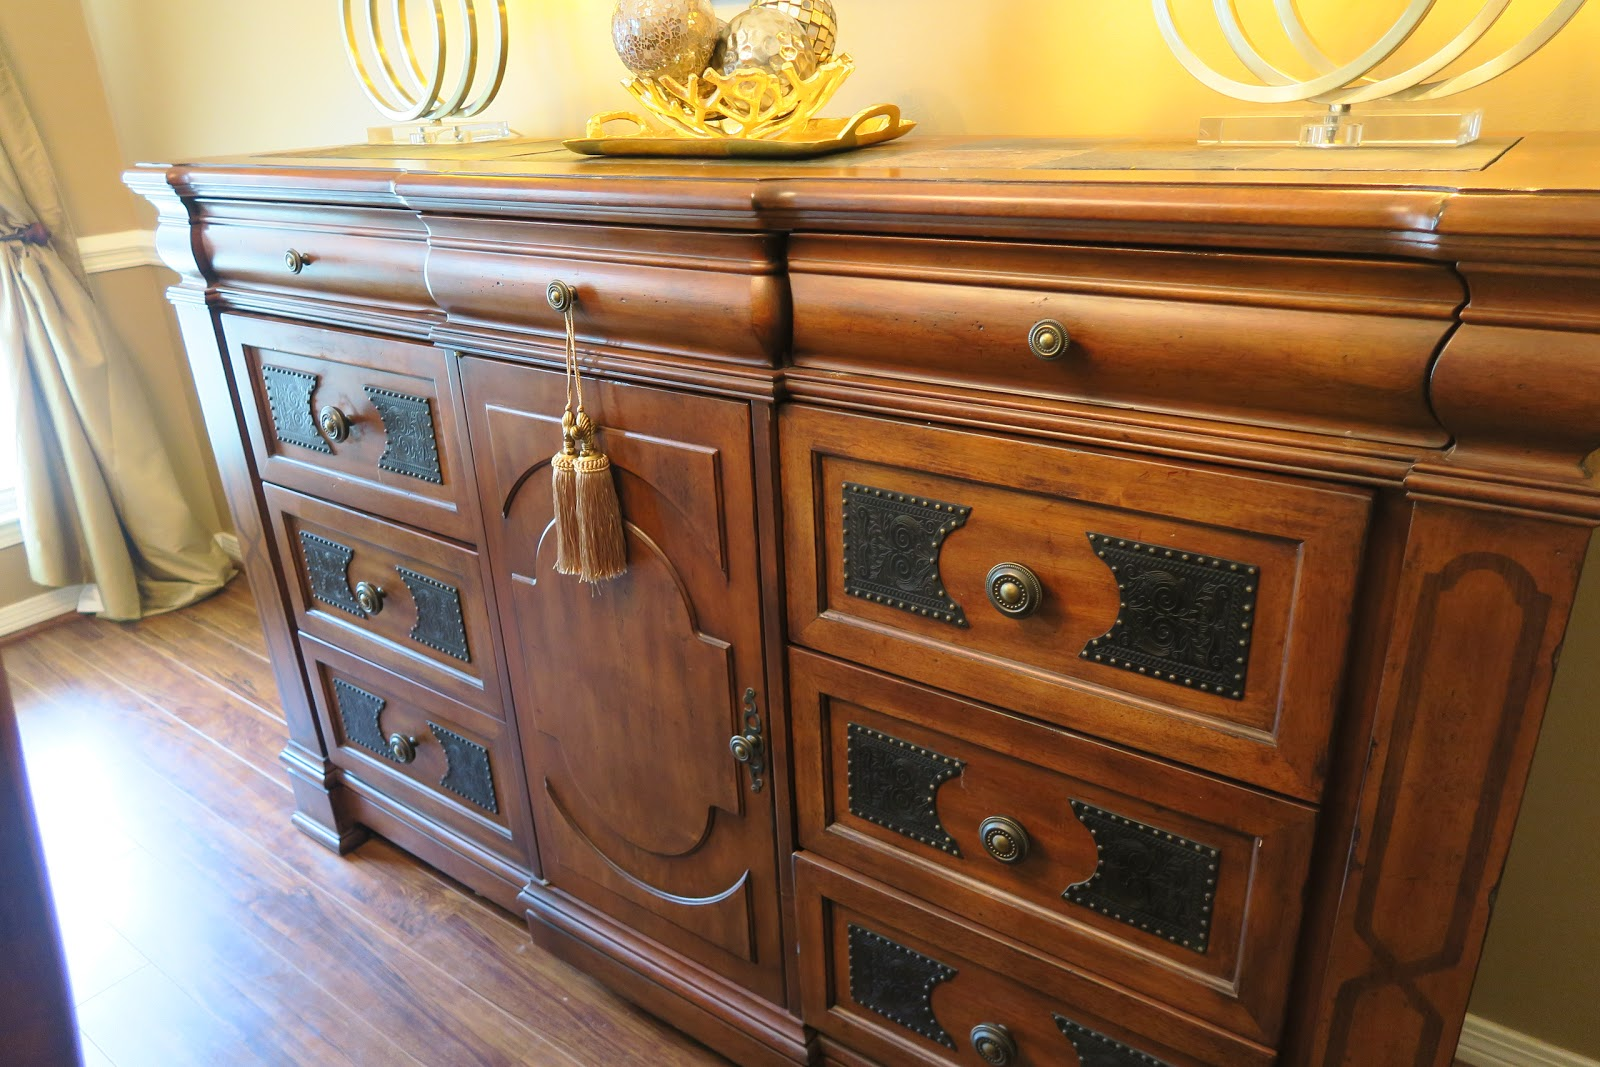 I Recently Shared A Video On My YouTune Channel The Steps Took Cleaning Out Hutch In Dining Room Thought Should Also Share Some Tips Here